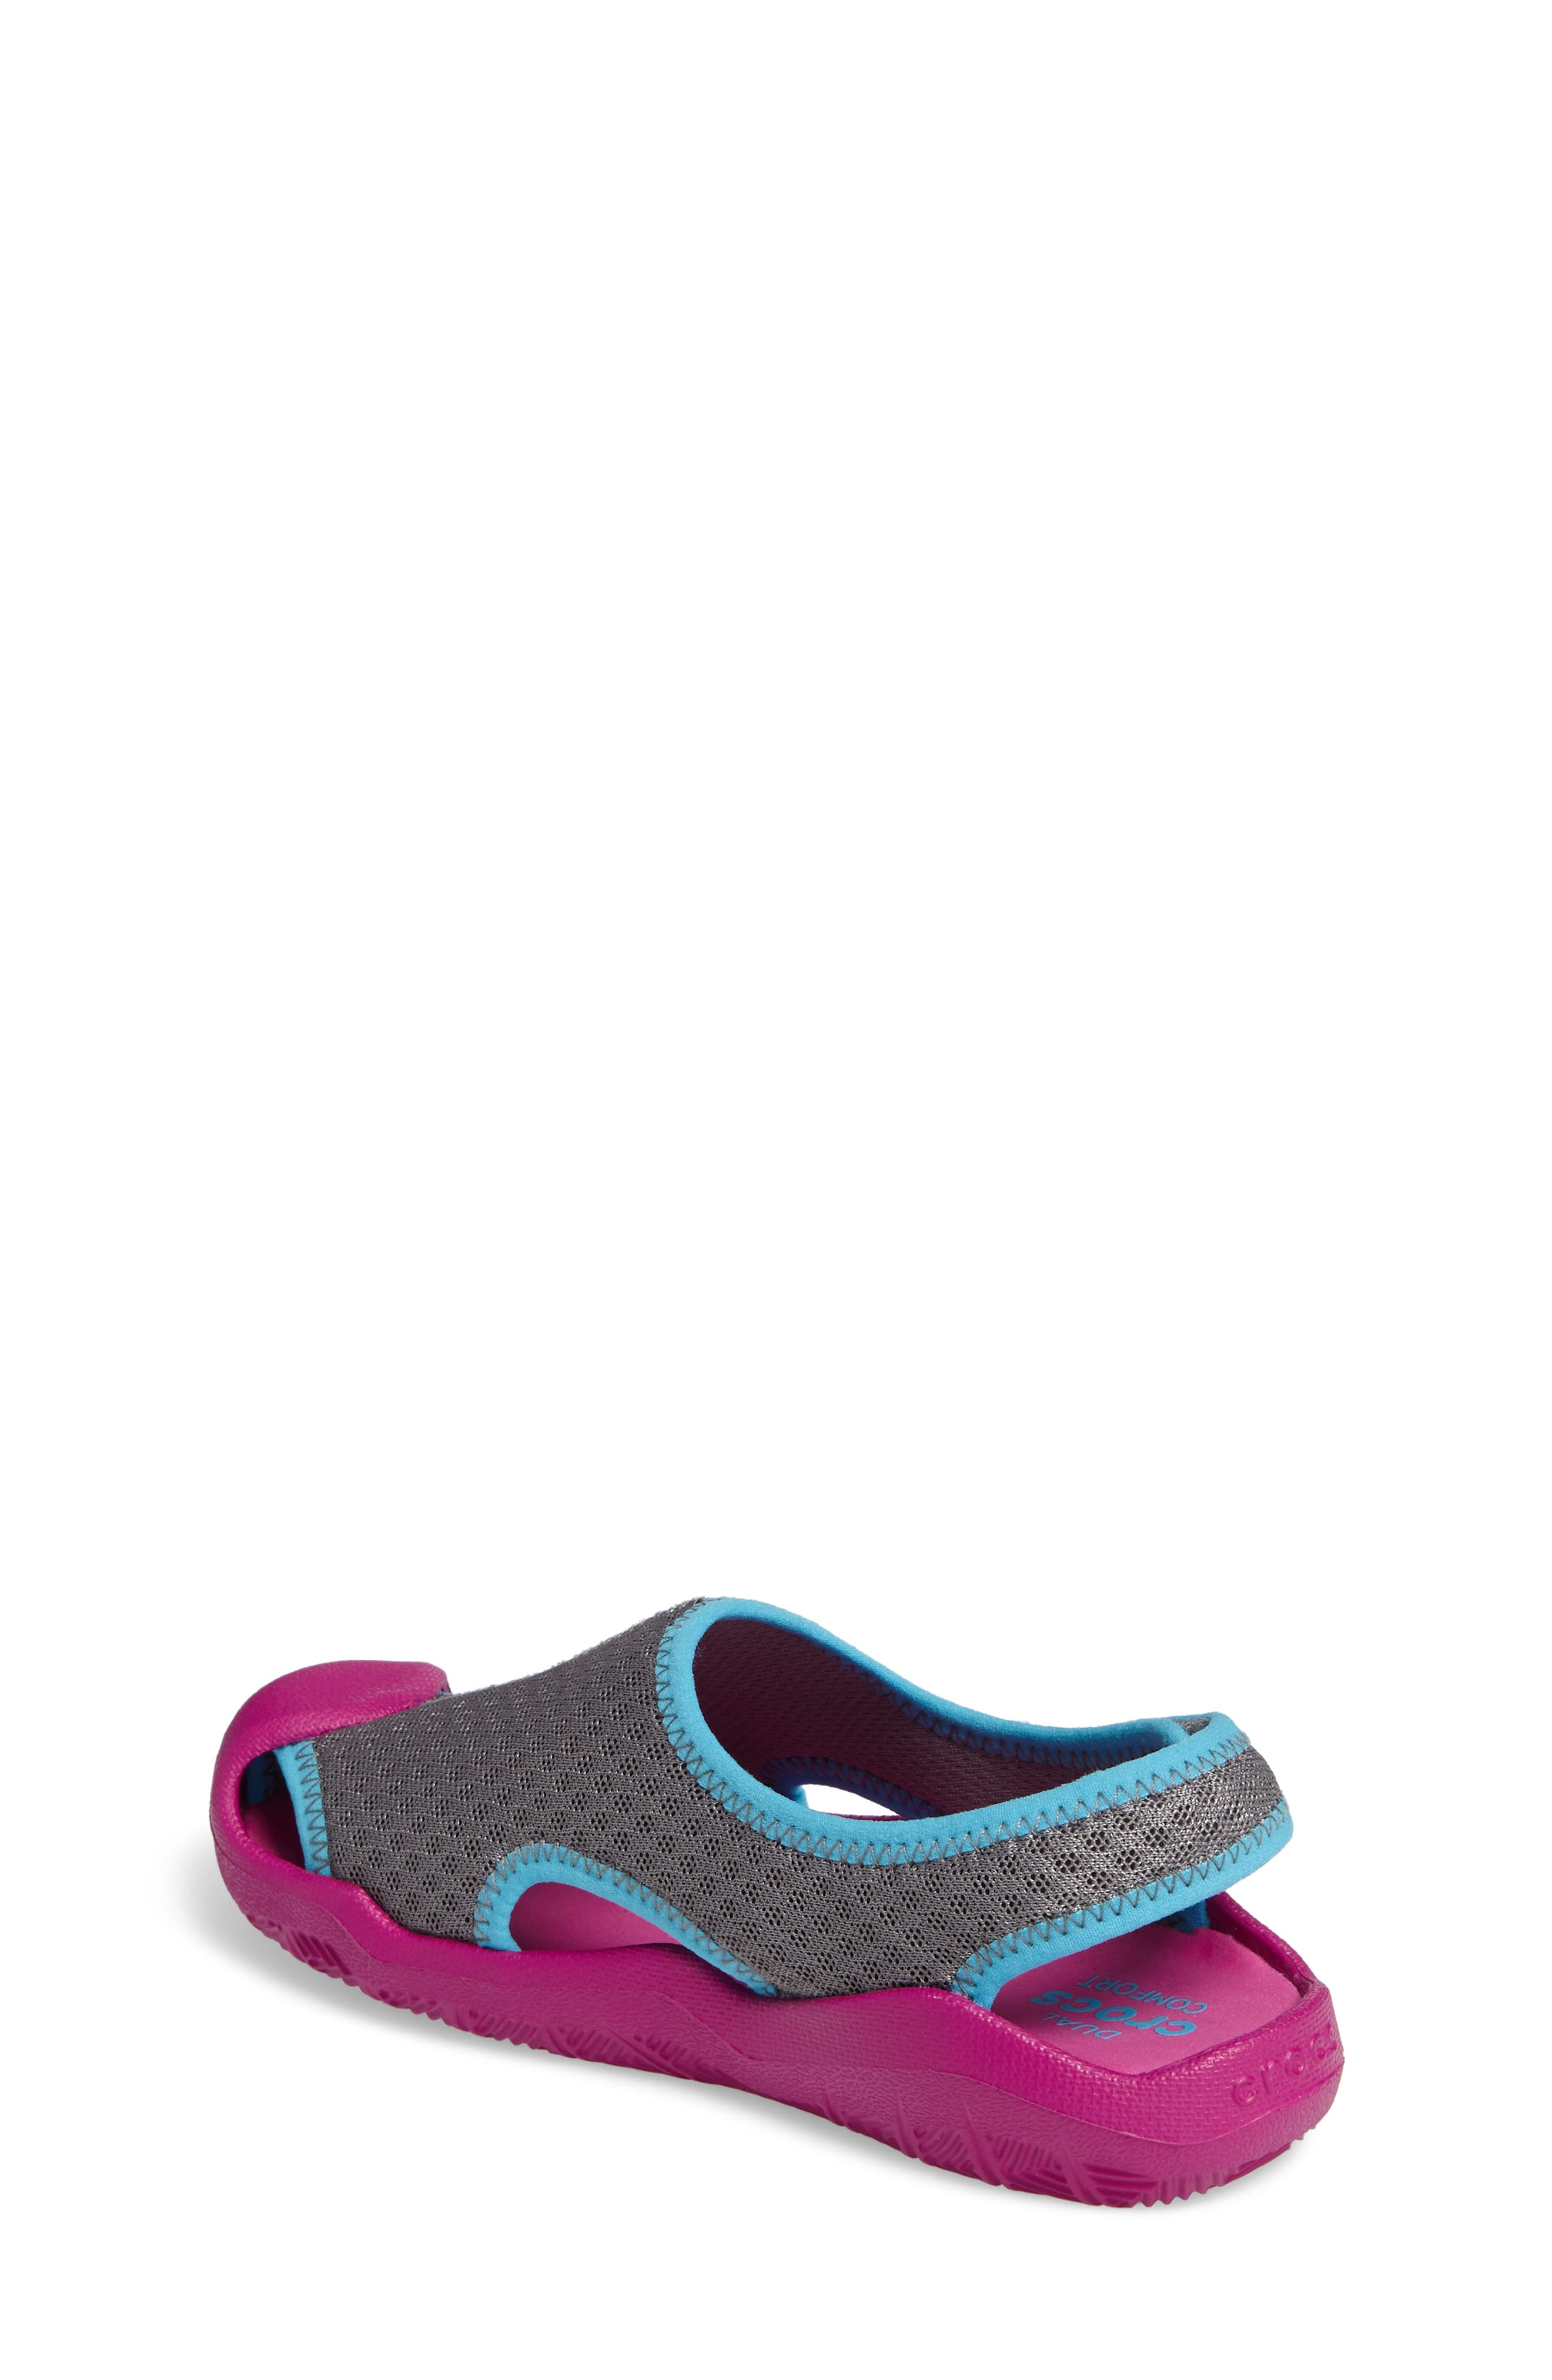 Swiftwater Sandal,                             Alternate thumbnail 2, color,                             057